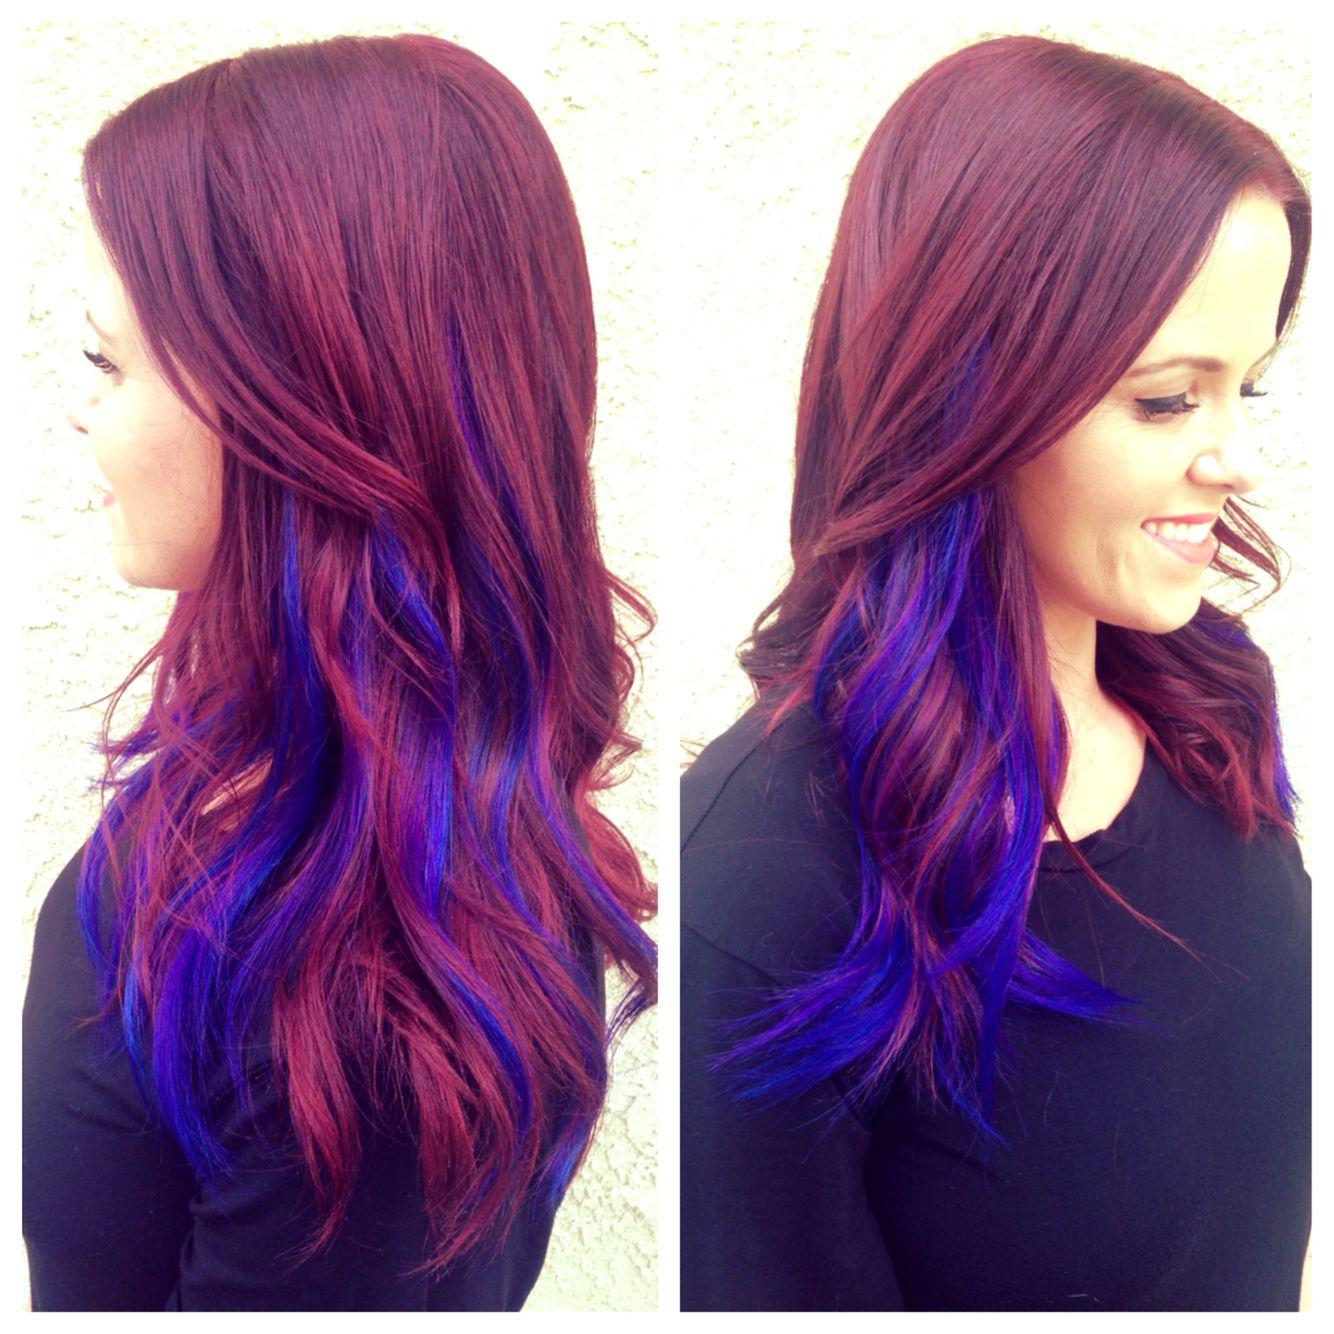 Lila Blaue Haare Violet Red Hair Cobalt Blue And Purple Extensions Done